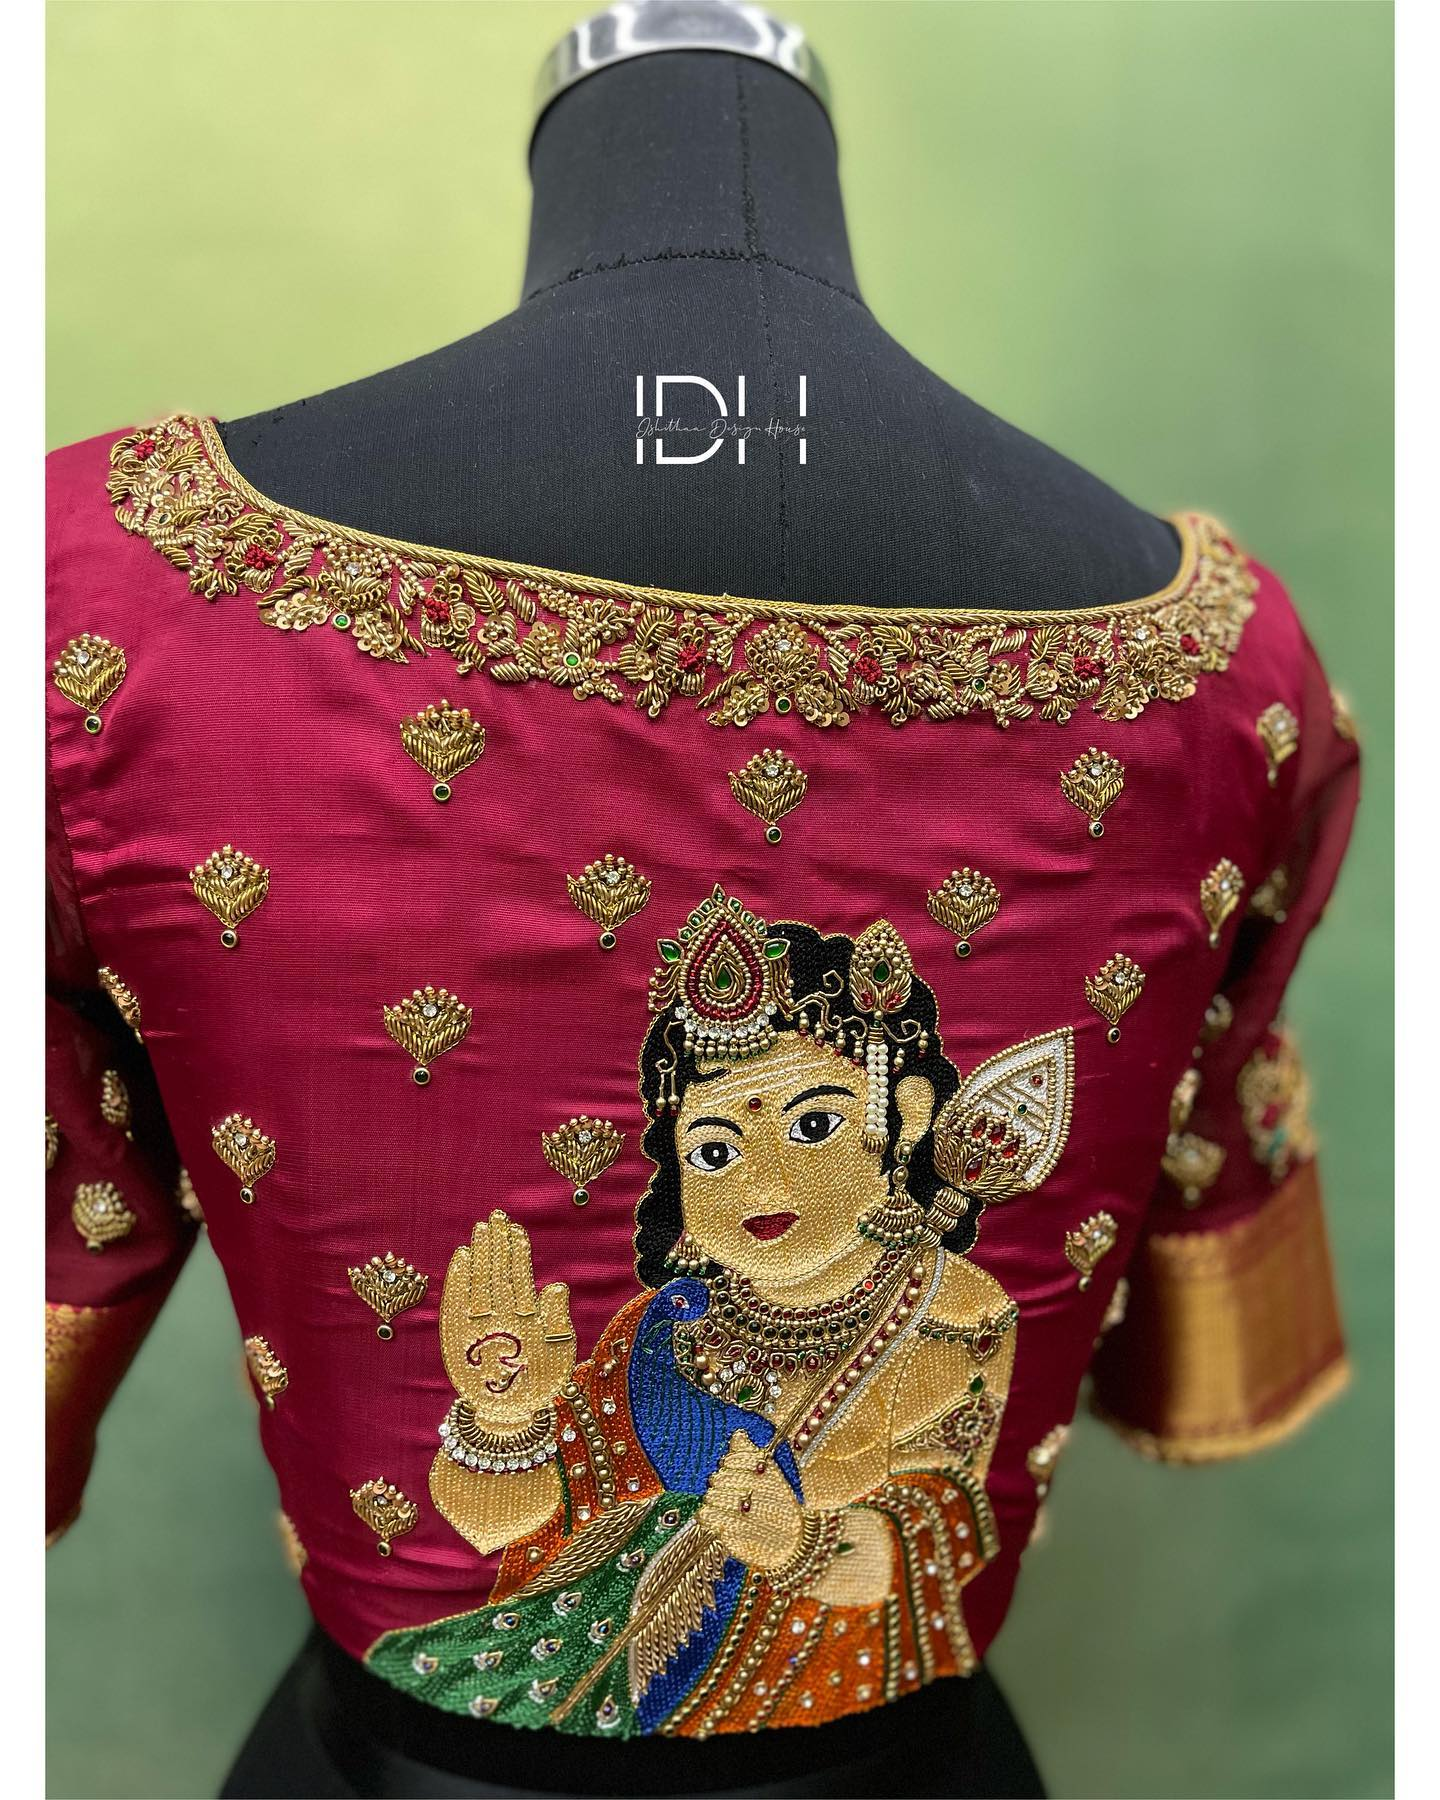 Gorgeous wine color designer blouse with Lord Kuamara swani design hand embroidery maggam work on back. Blouse with peacock zardosi work on sleeves.  2021-04-22